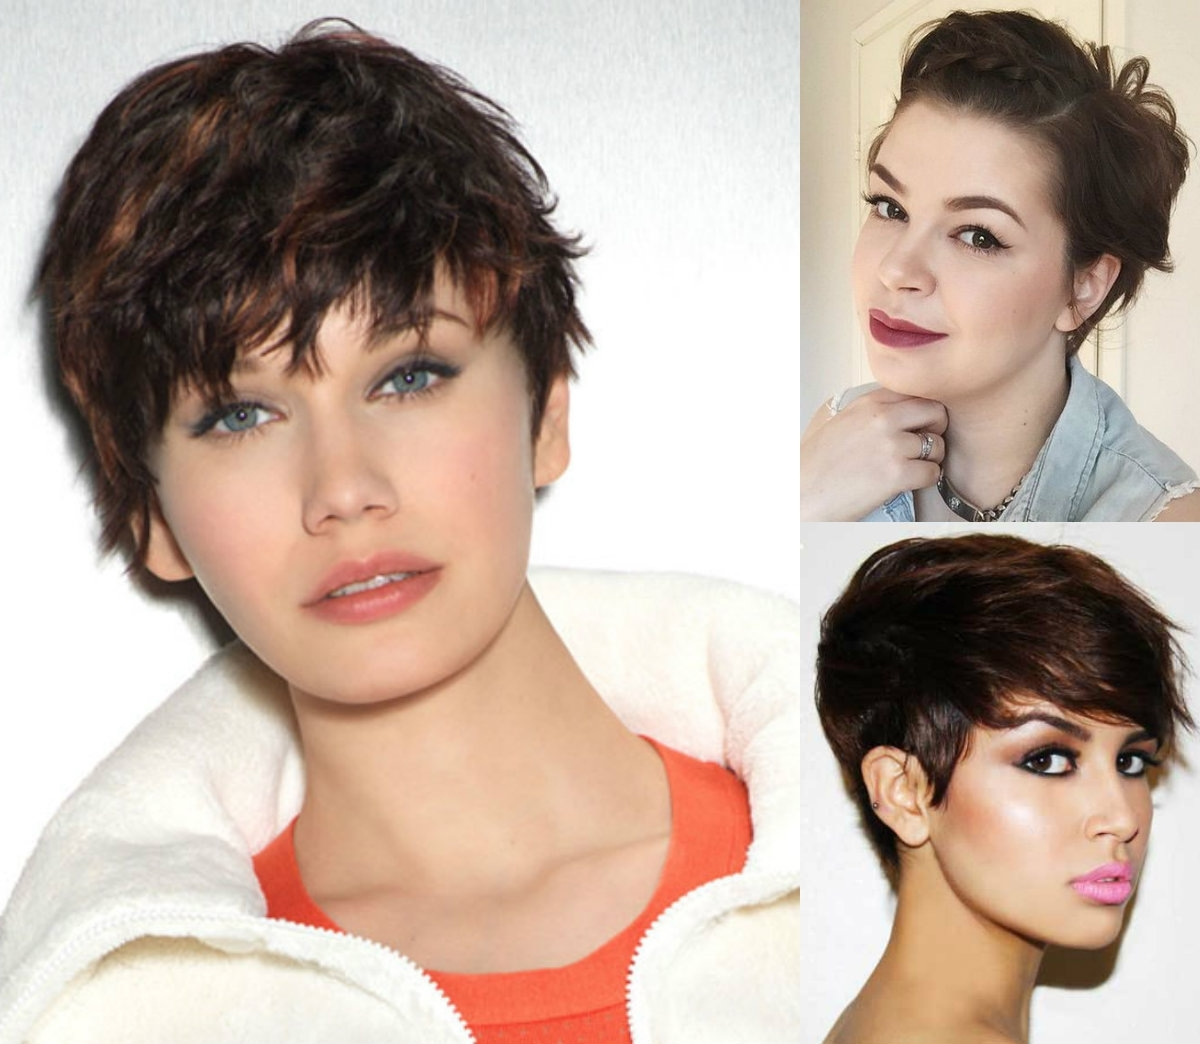 Best Pixie Haircuts For Round Faces 2017 | Hairdrome Regarding Latest Pixie Hairstyles For Fat Face (View 12 of 15)